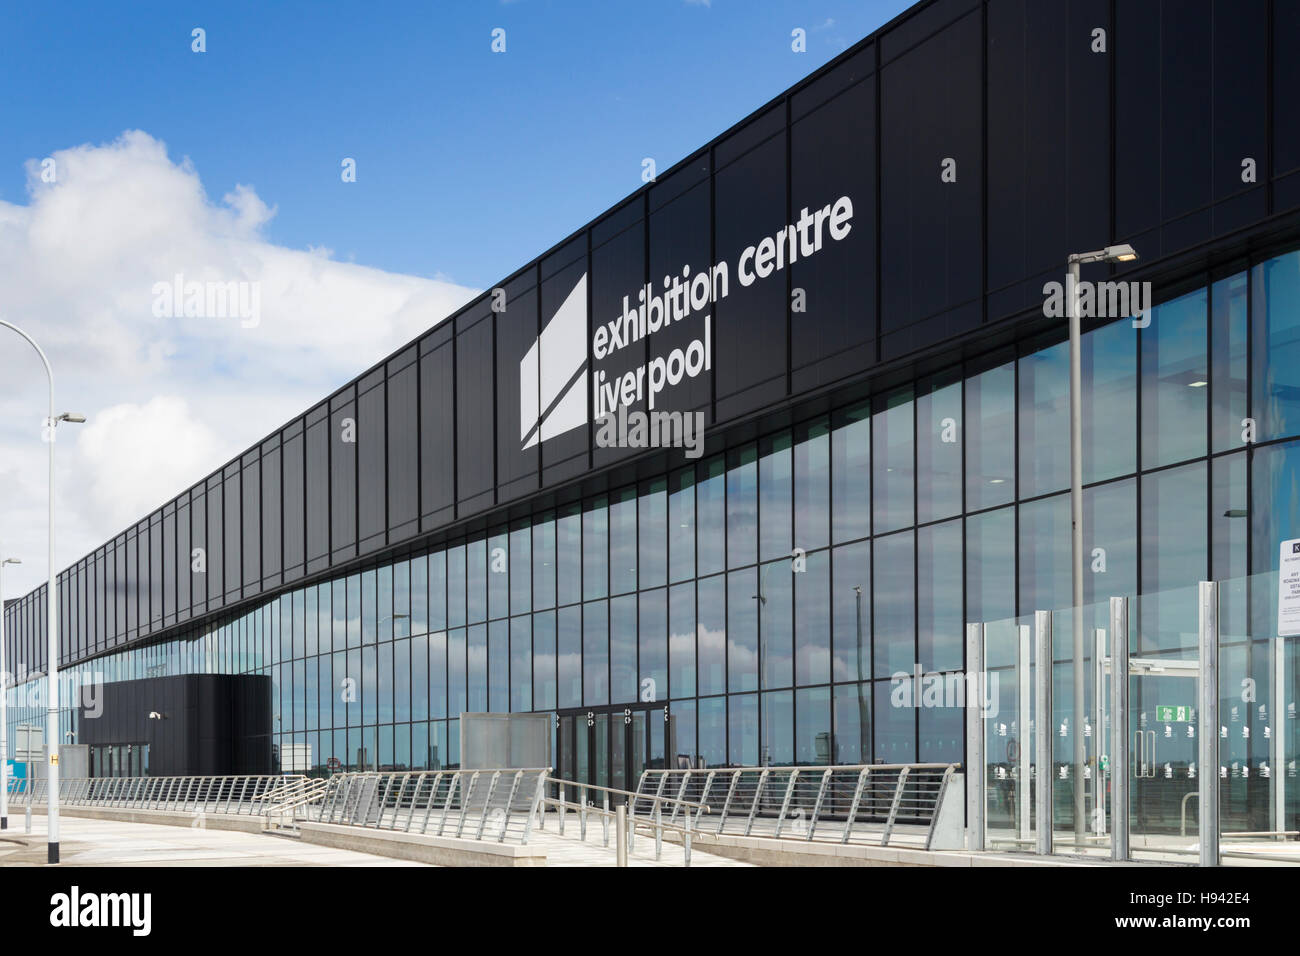 Liverpool Exhibition Centre on Kings Dock Liverpool waterfront, not far from sister venues BT Convention Centre - Stock Image